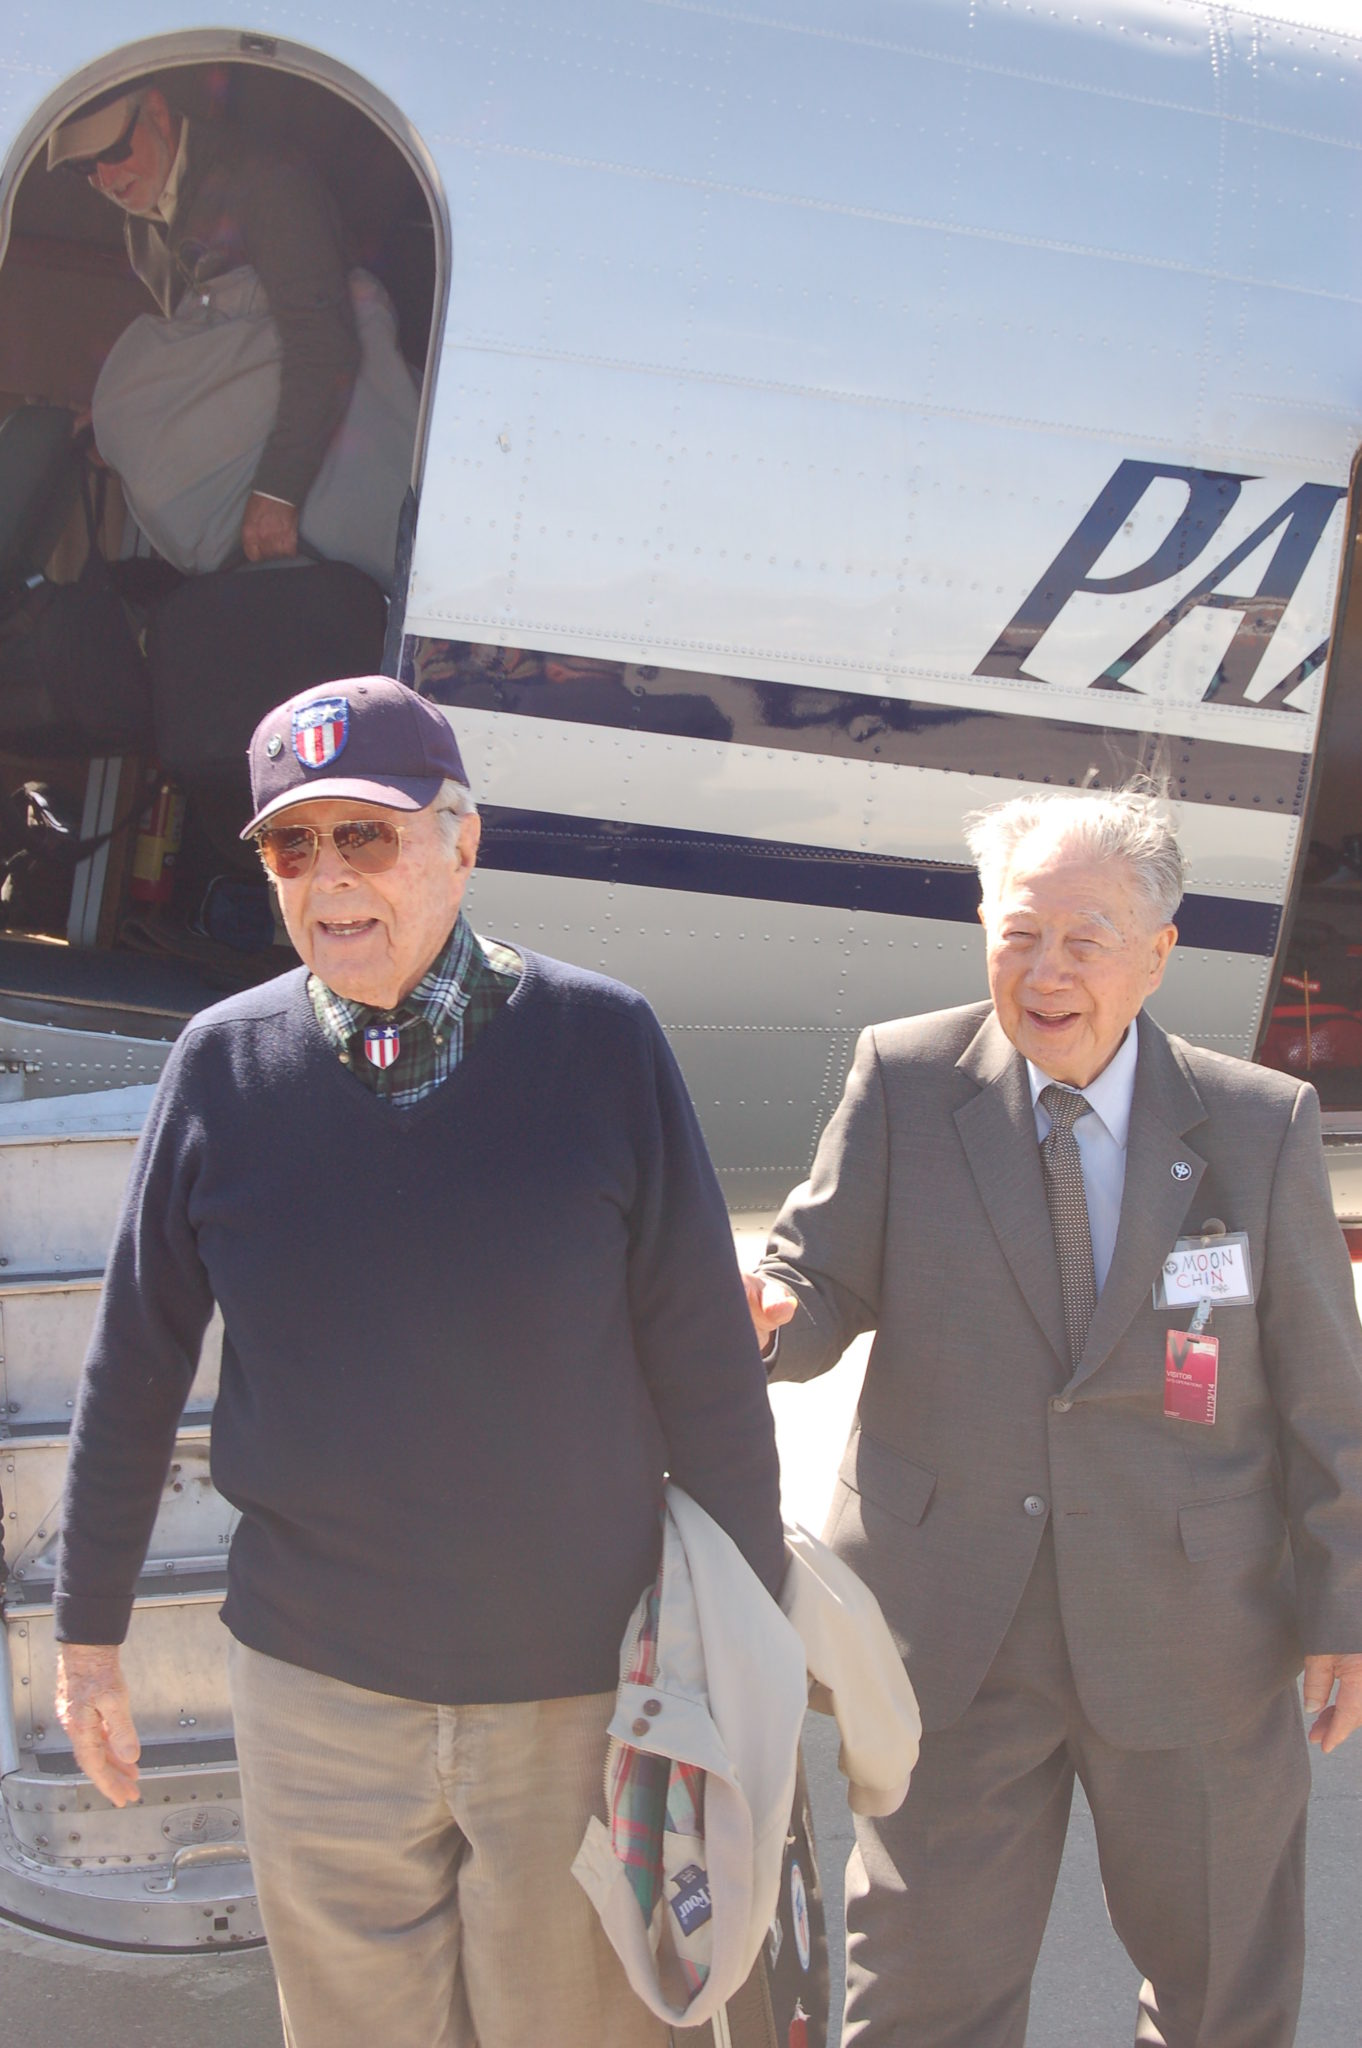 Peter Goutiere and Moon Chin are the two living pilots from CNAC from World War II. Chin set a record for the number of people carried on a C-47/DC-3: 71. Among them was Col. Jimmy Doolittle, escaping China after his famous raid on Tokyo in April 1942. Photo by Scott Hamilton